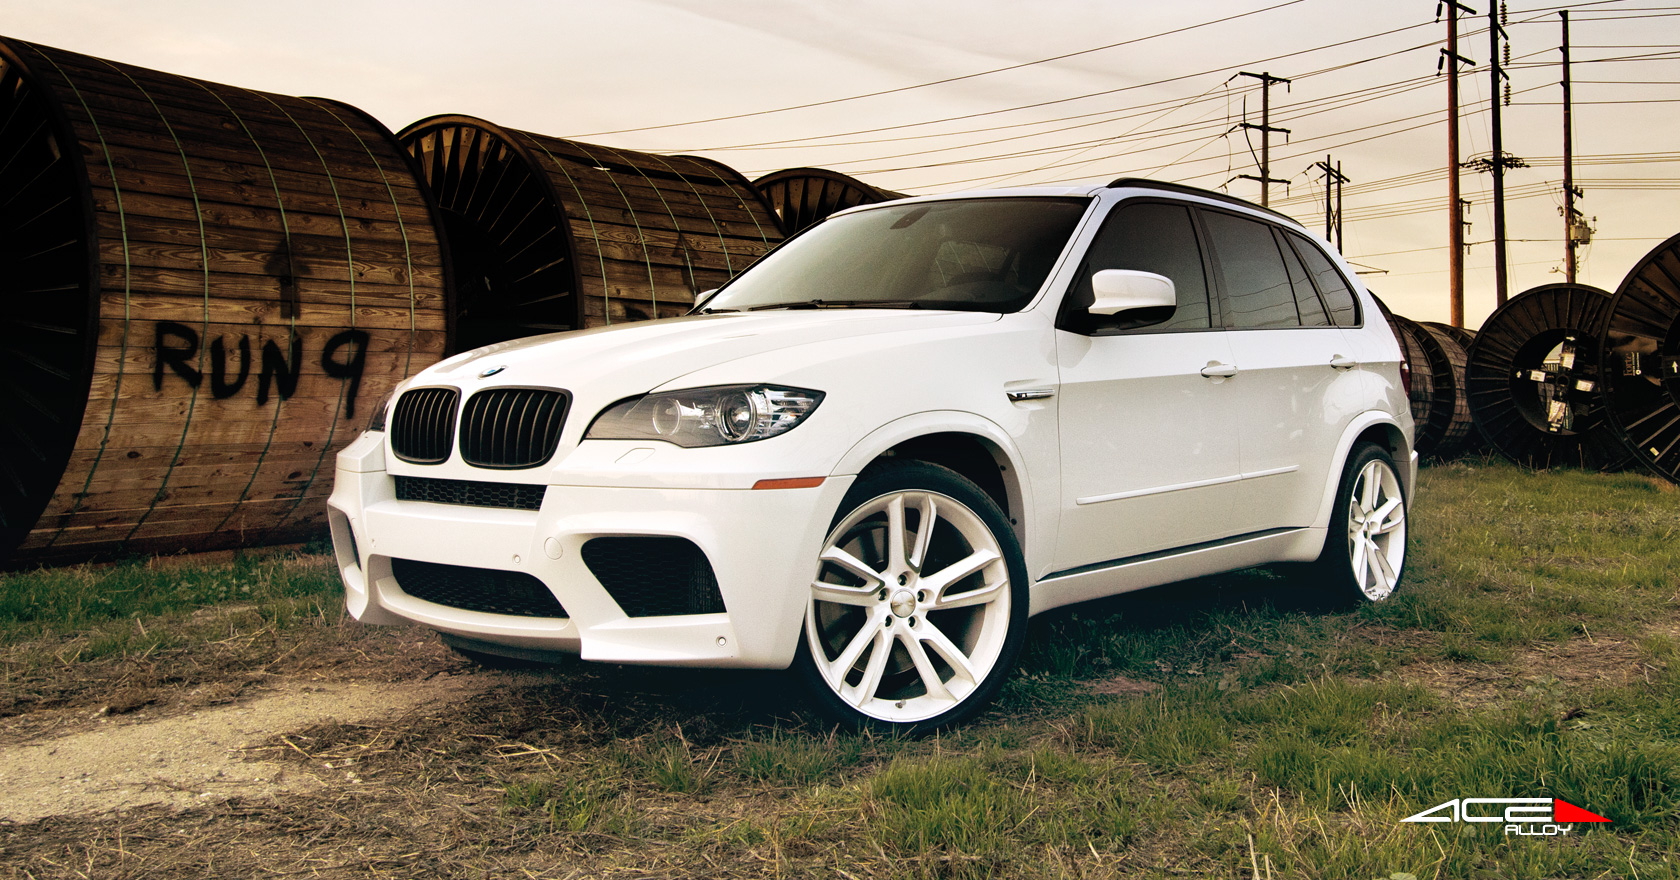 bmw x5 m series w 22 22x10 front 22x10 rear white machined face ace. Black Bedroom Furniture Sets. Home Design Ideas